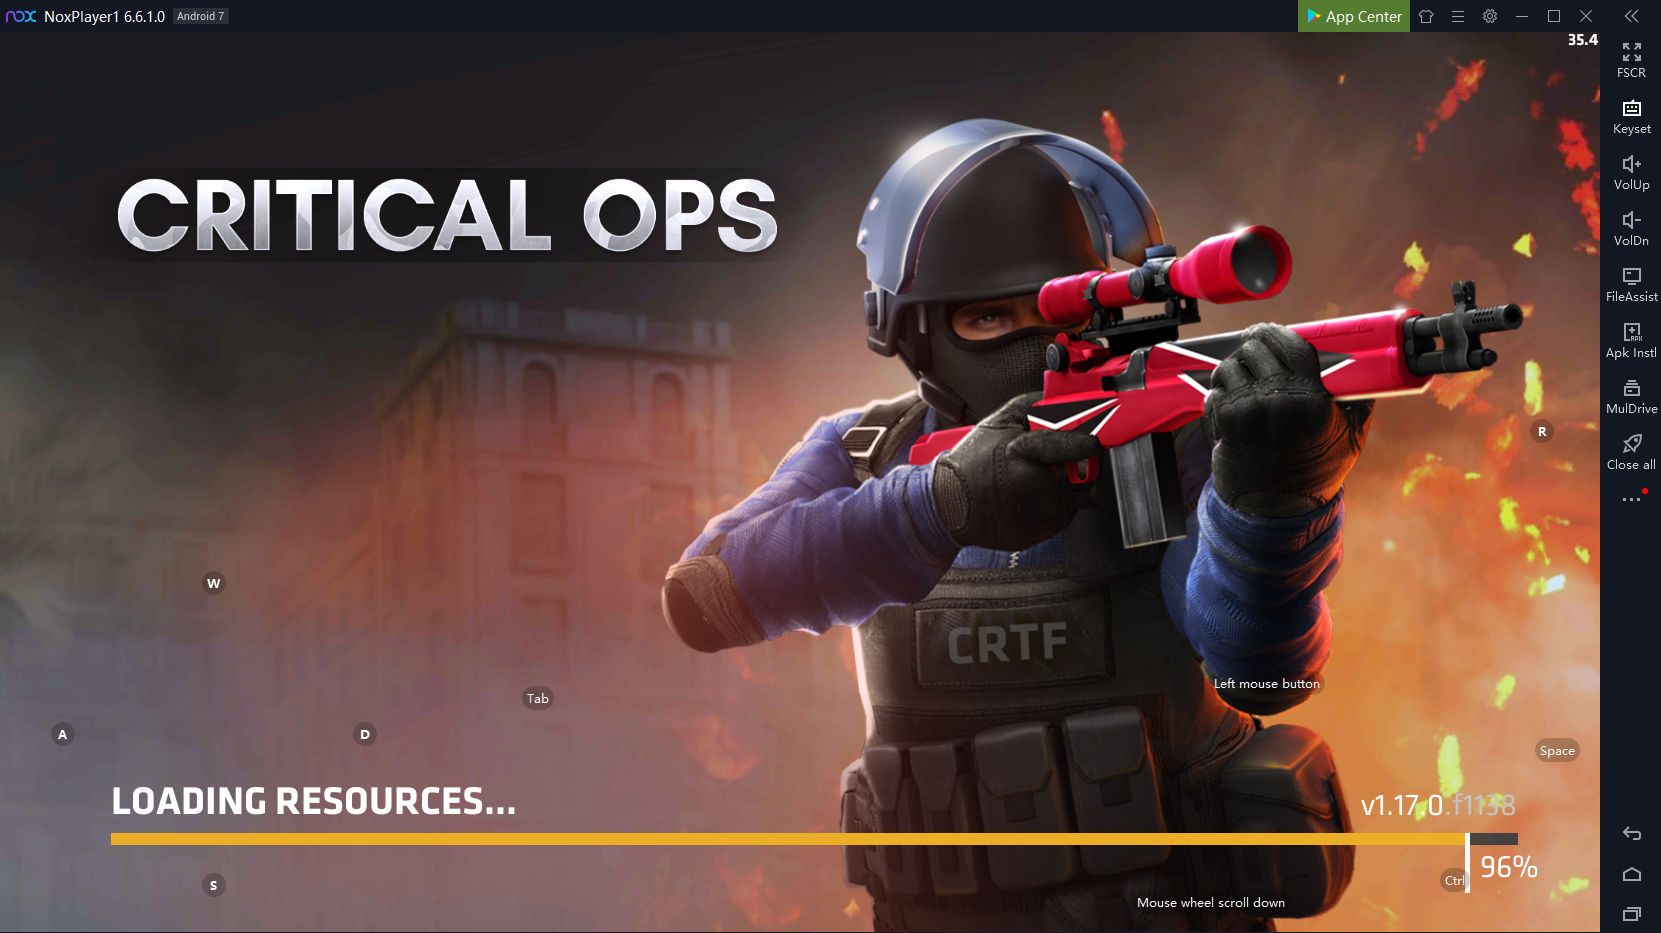 Download And Play Critical Ops Reloaded On Pc With Noxplayer Noxplayer